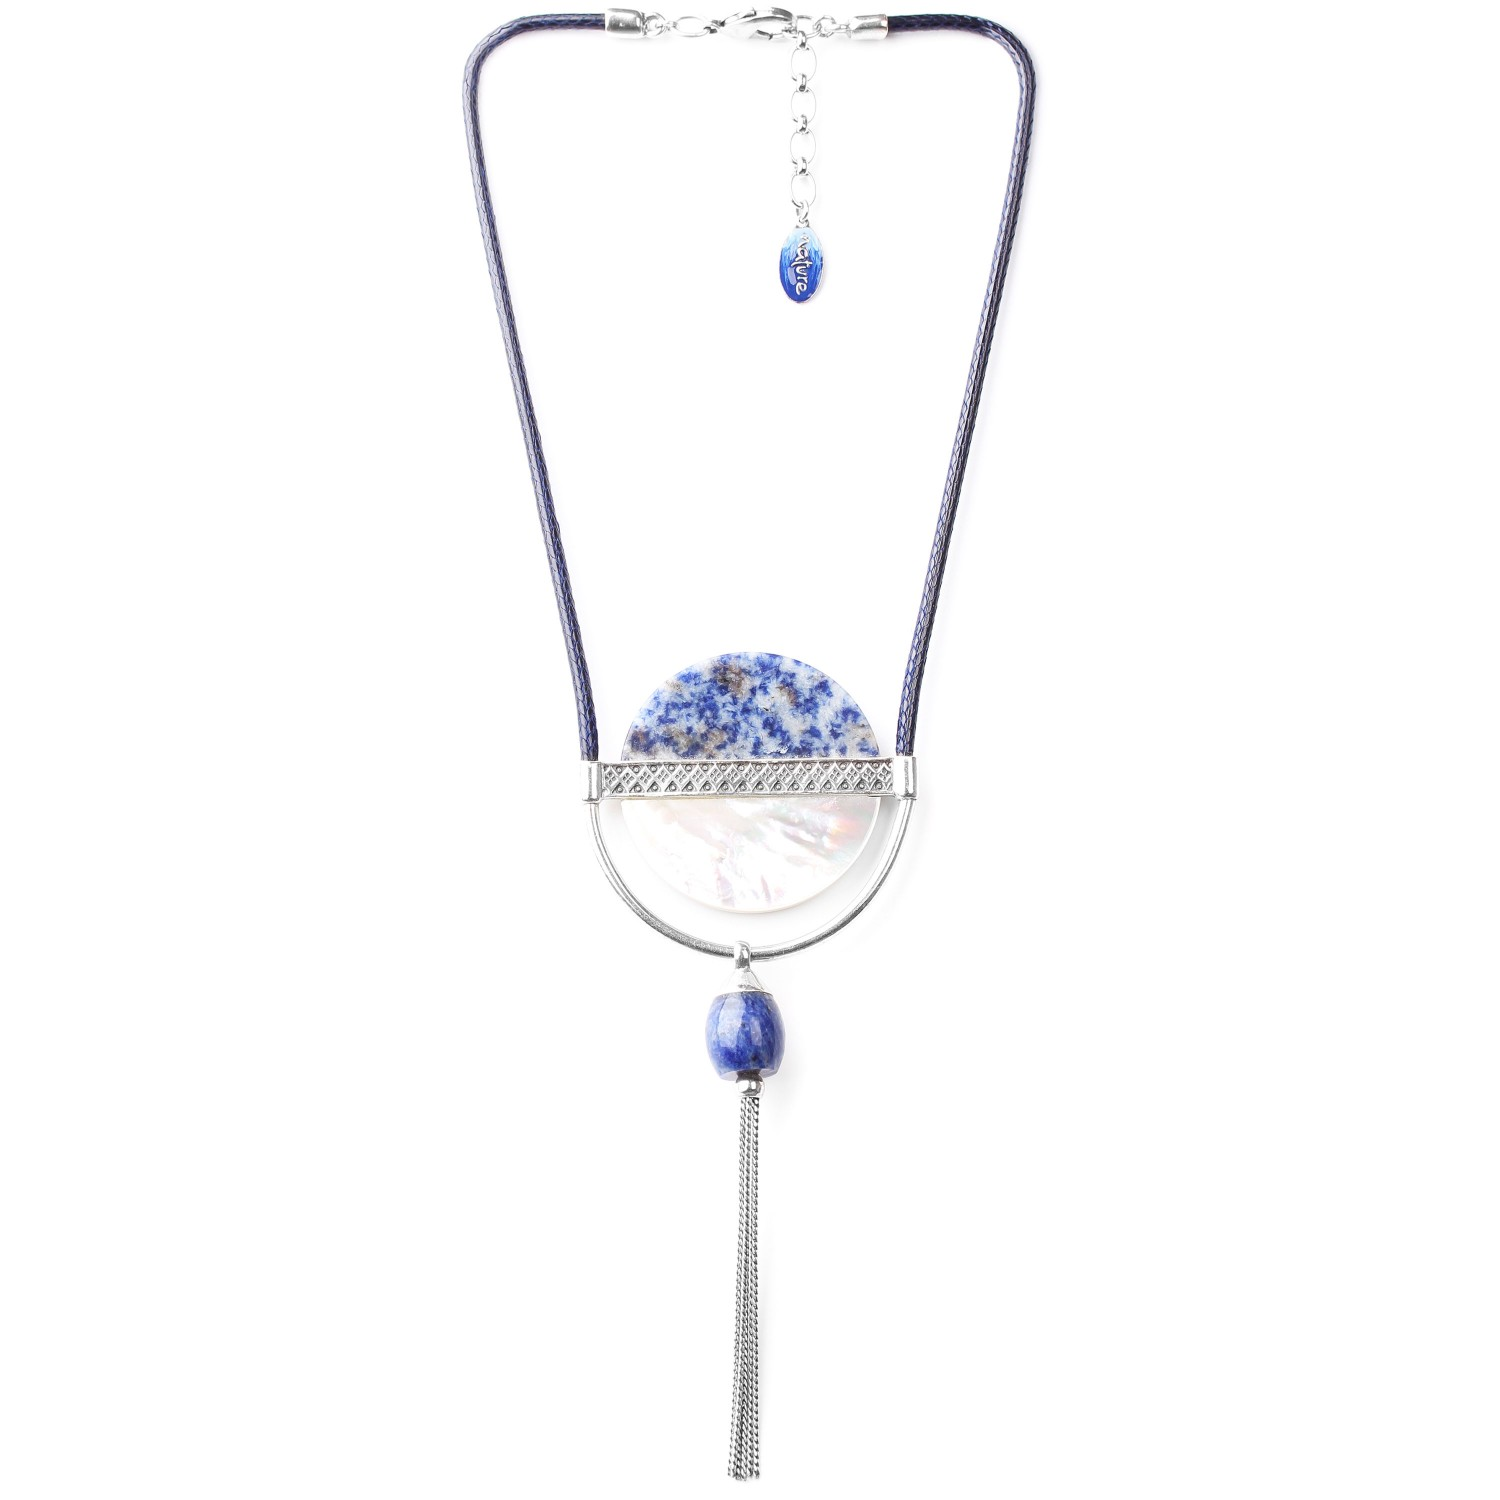 CYCLADES collier disque & pompon